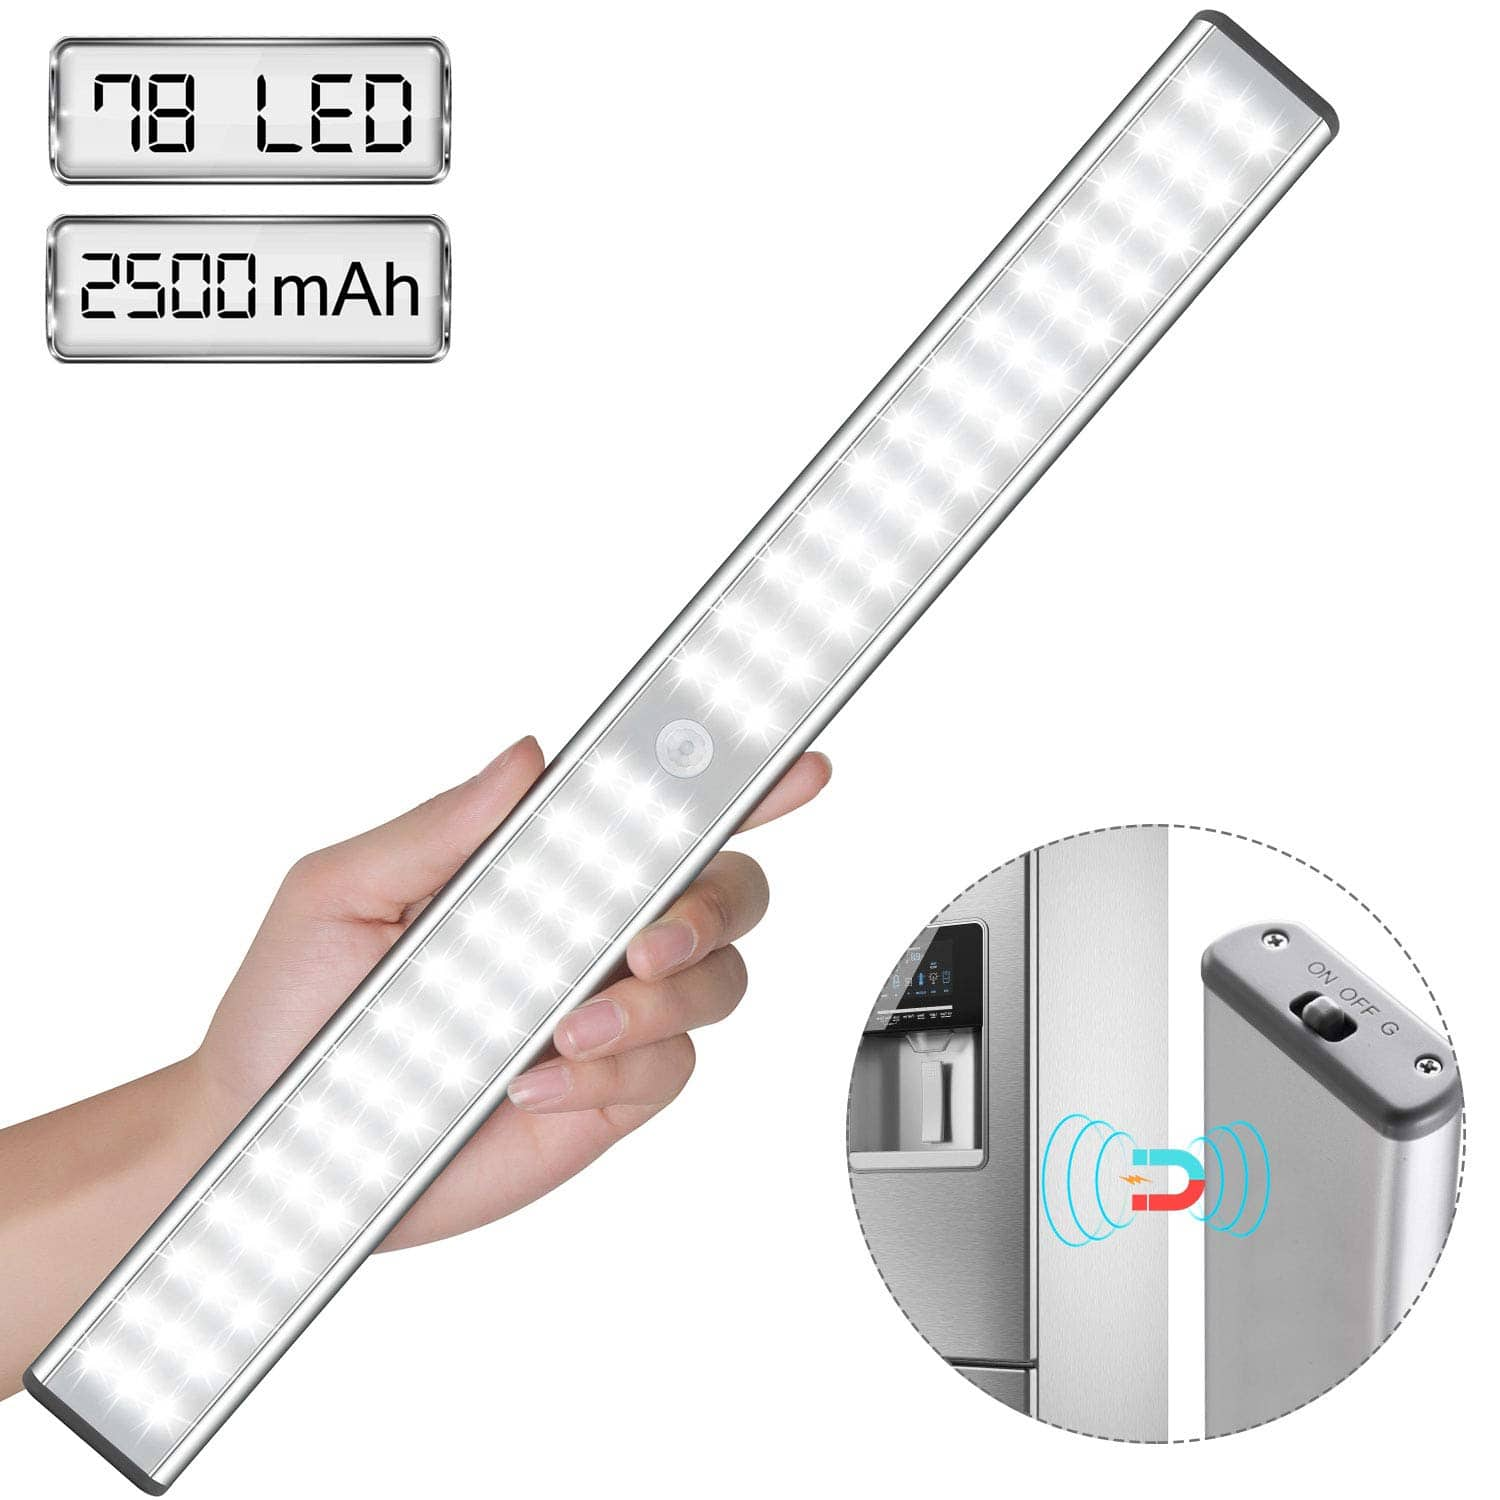 Super Bright Rechargeable Magnetic Closet Light 78LED -- $15.59